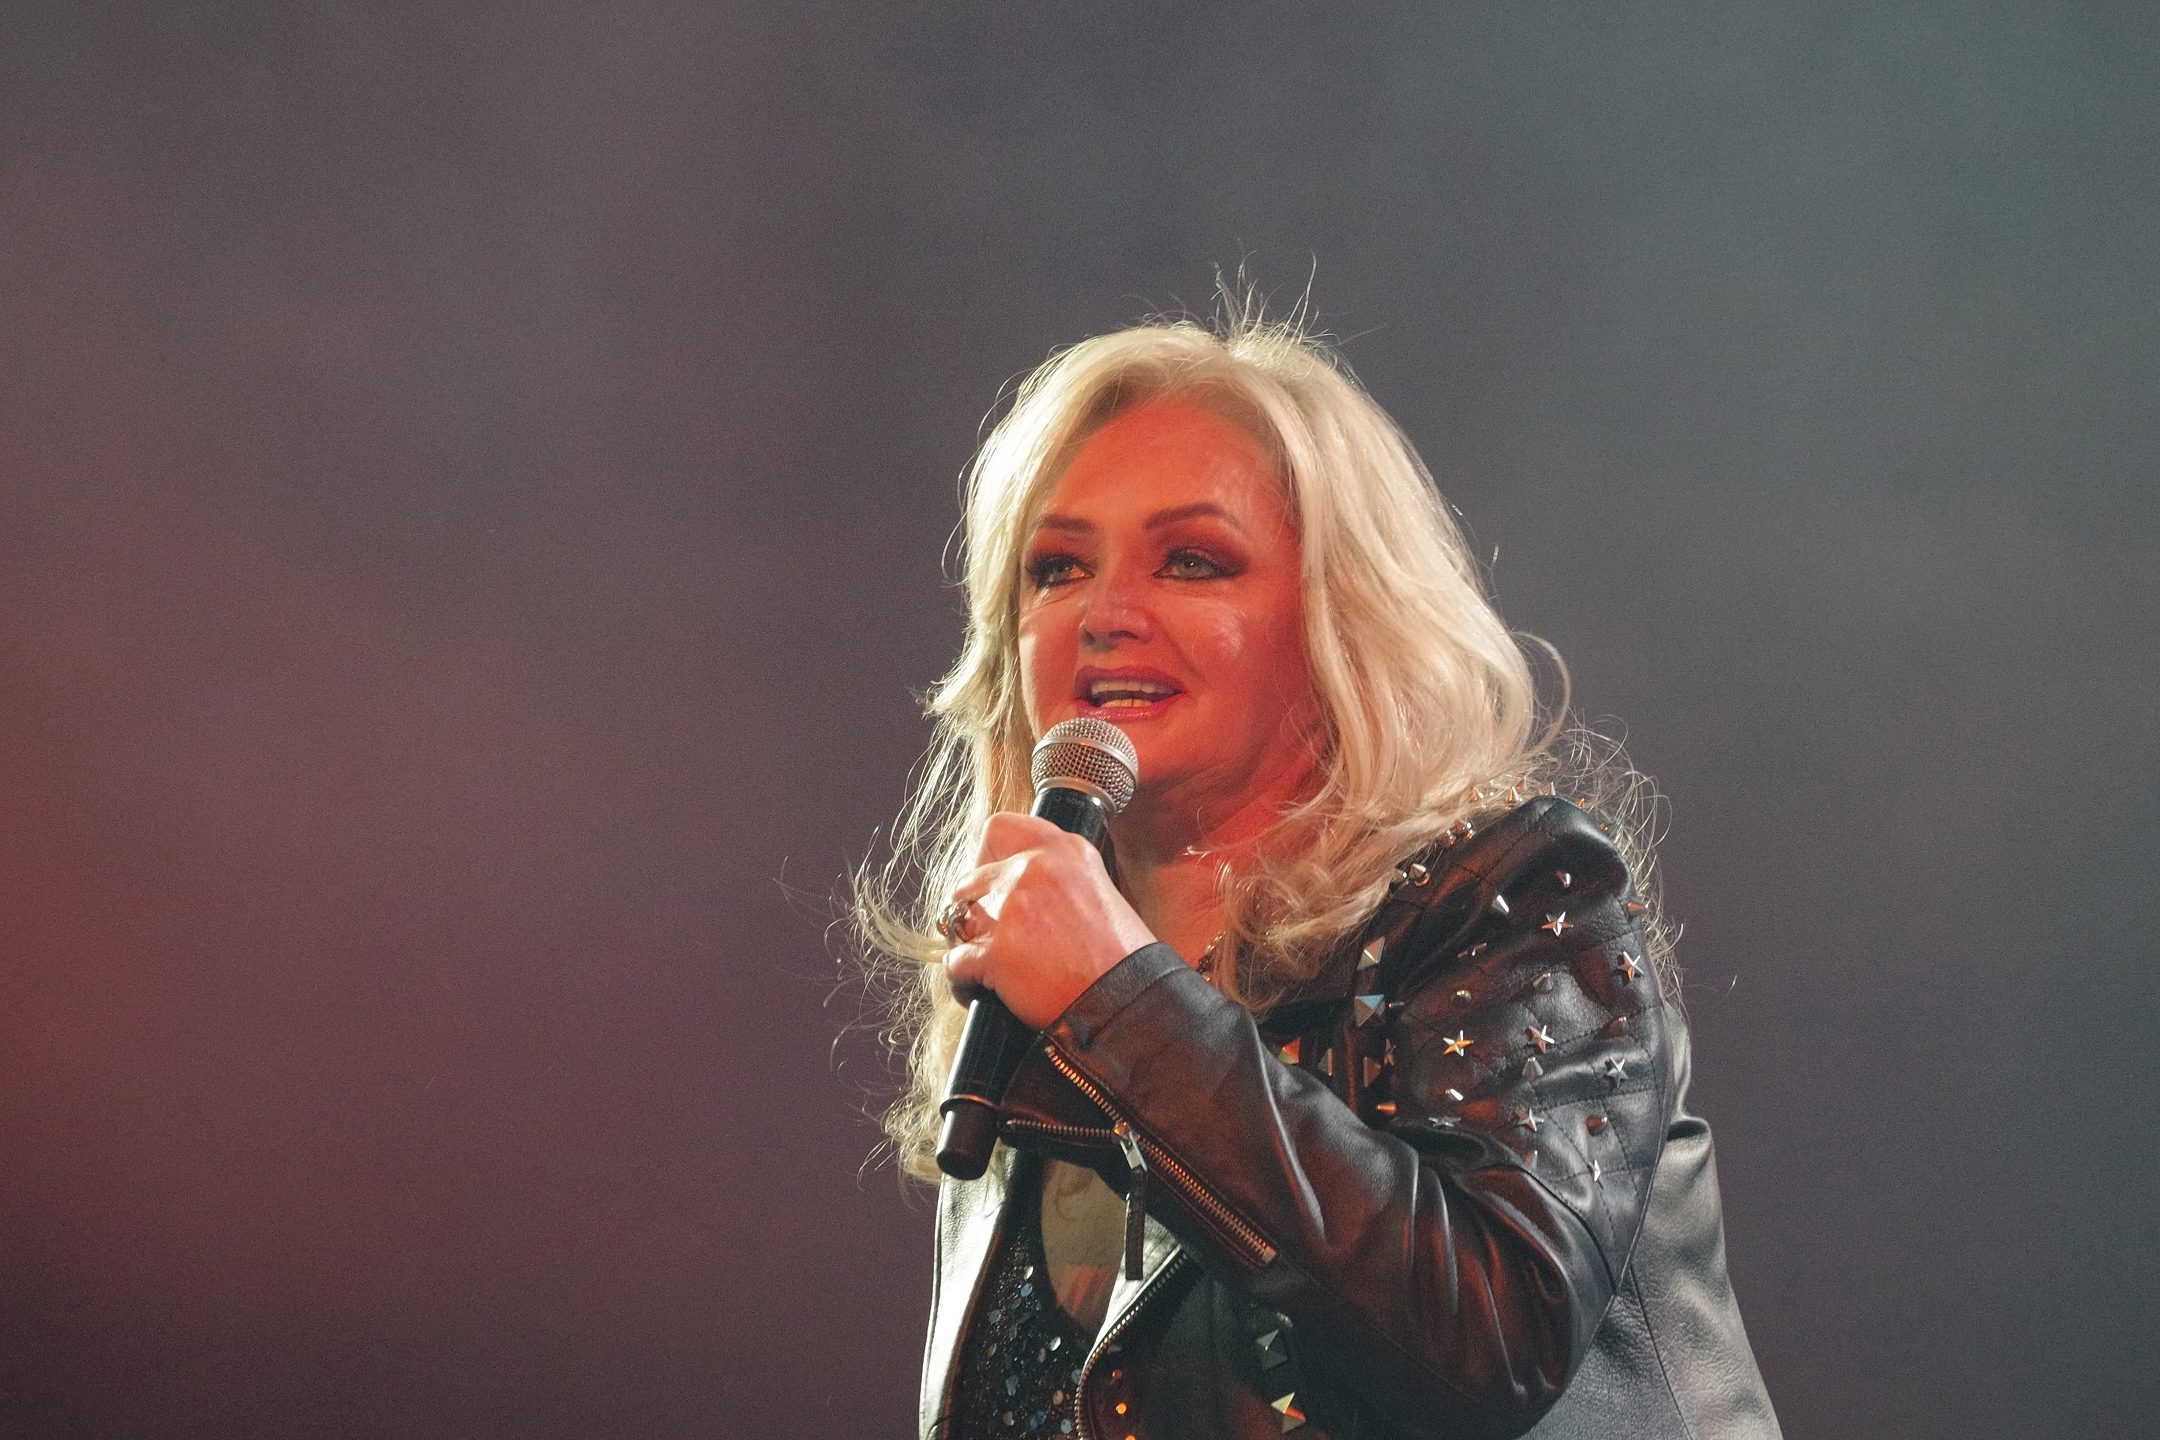 Bonnie Tyler – Holding Out For A Hero (2017)